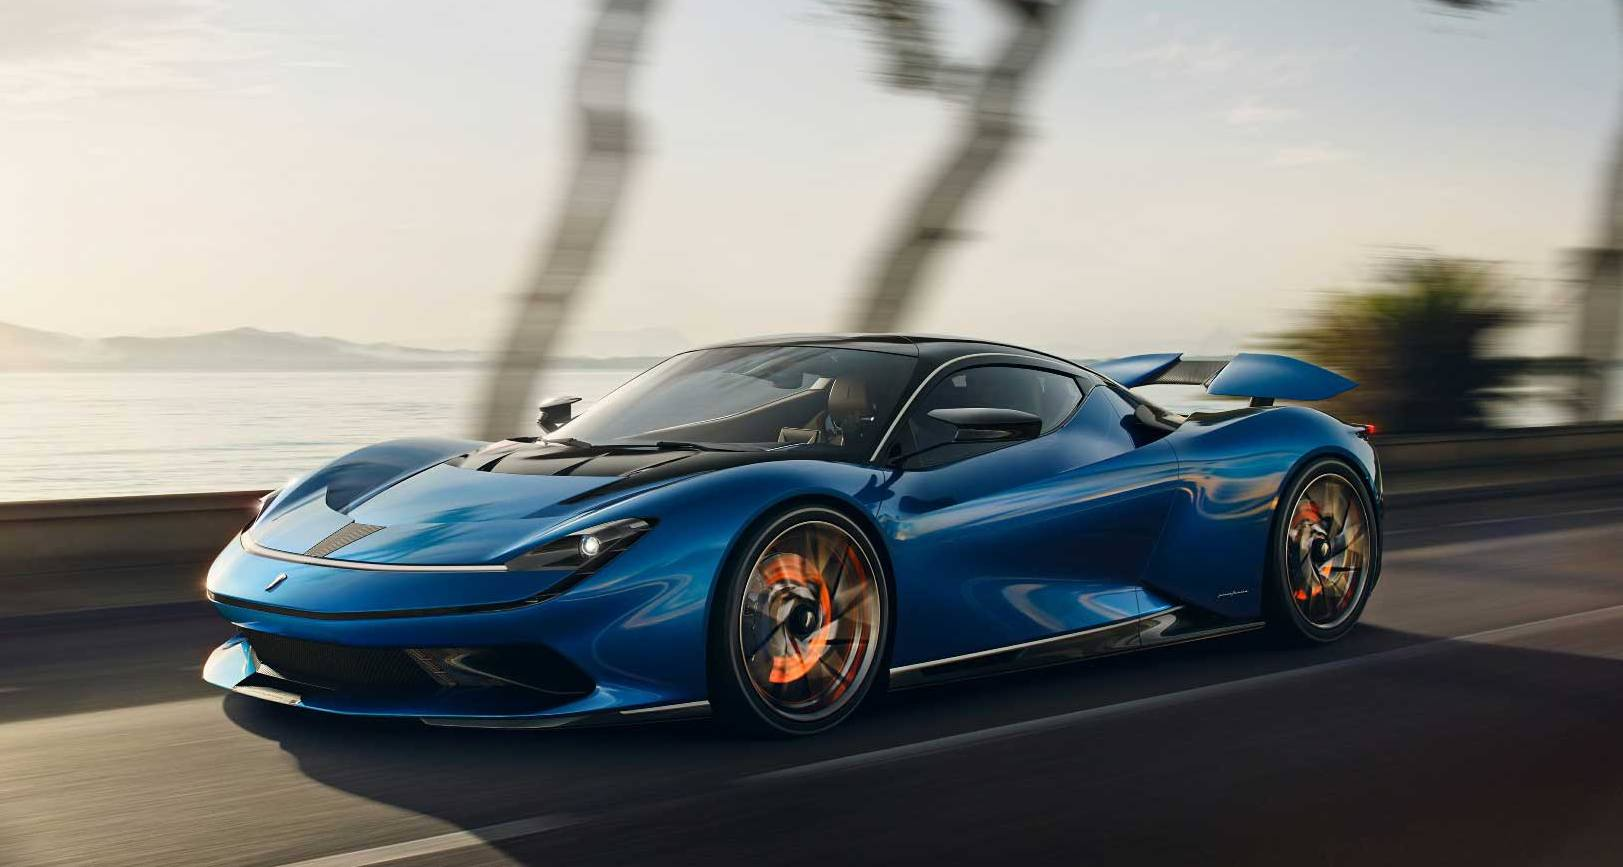 Hyperfast lonely hearts the dating site for supercar lovers